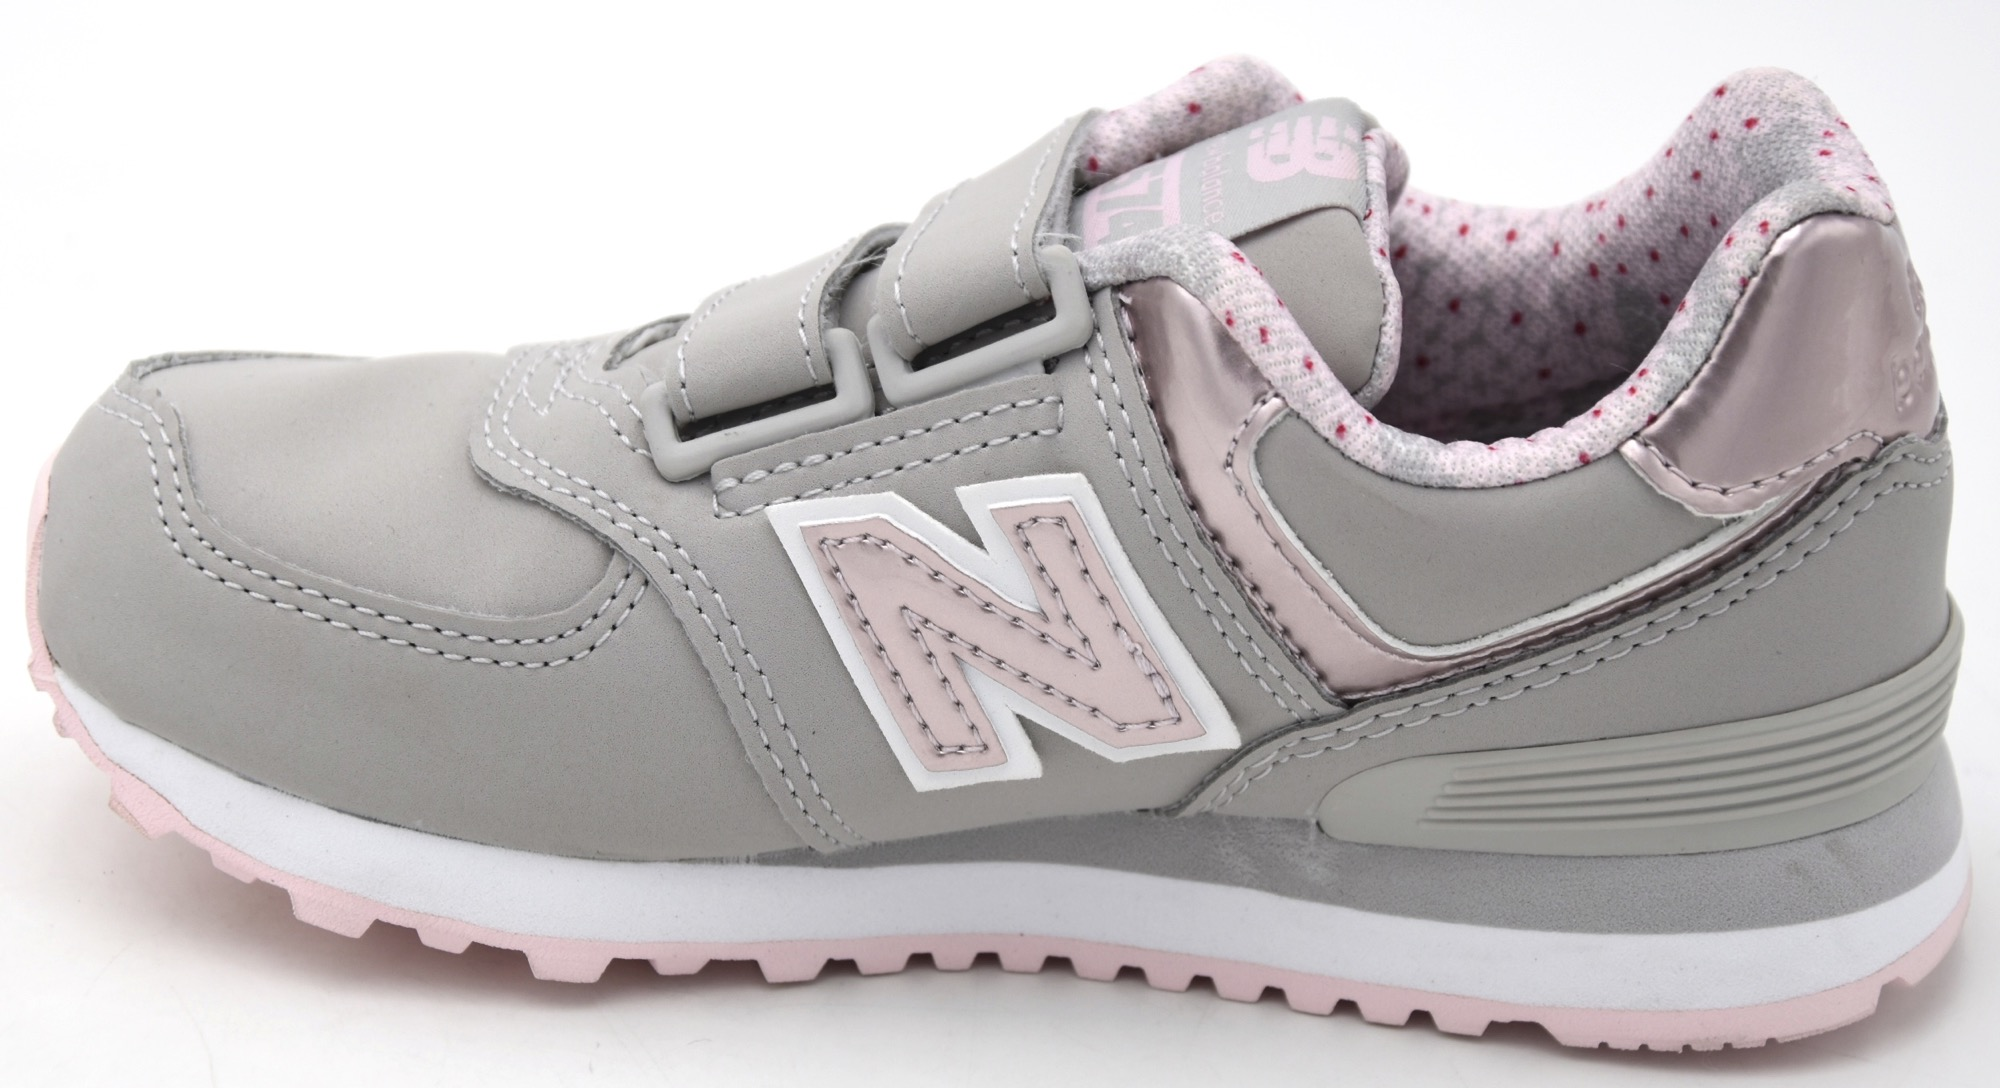 Details about New balance girl sneakers casual casual faux leather kv574f1y show original title